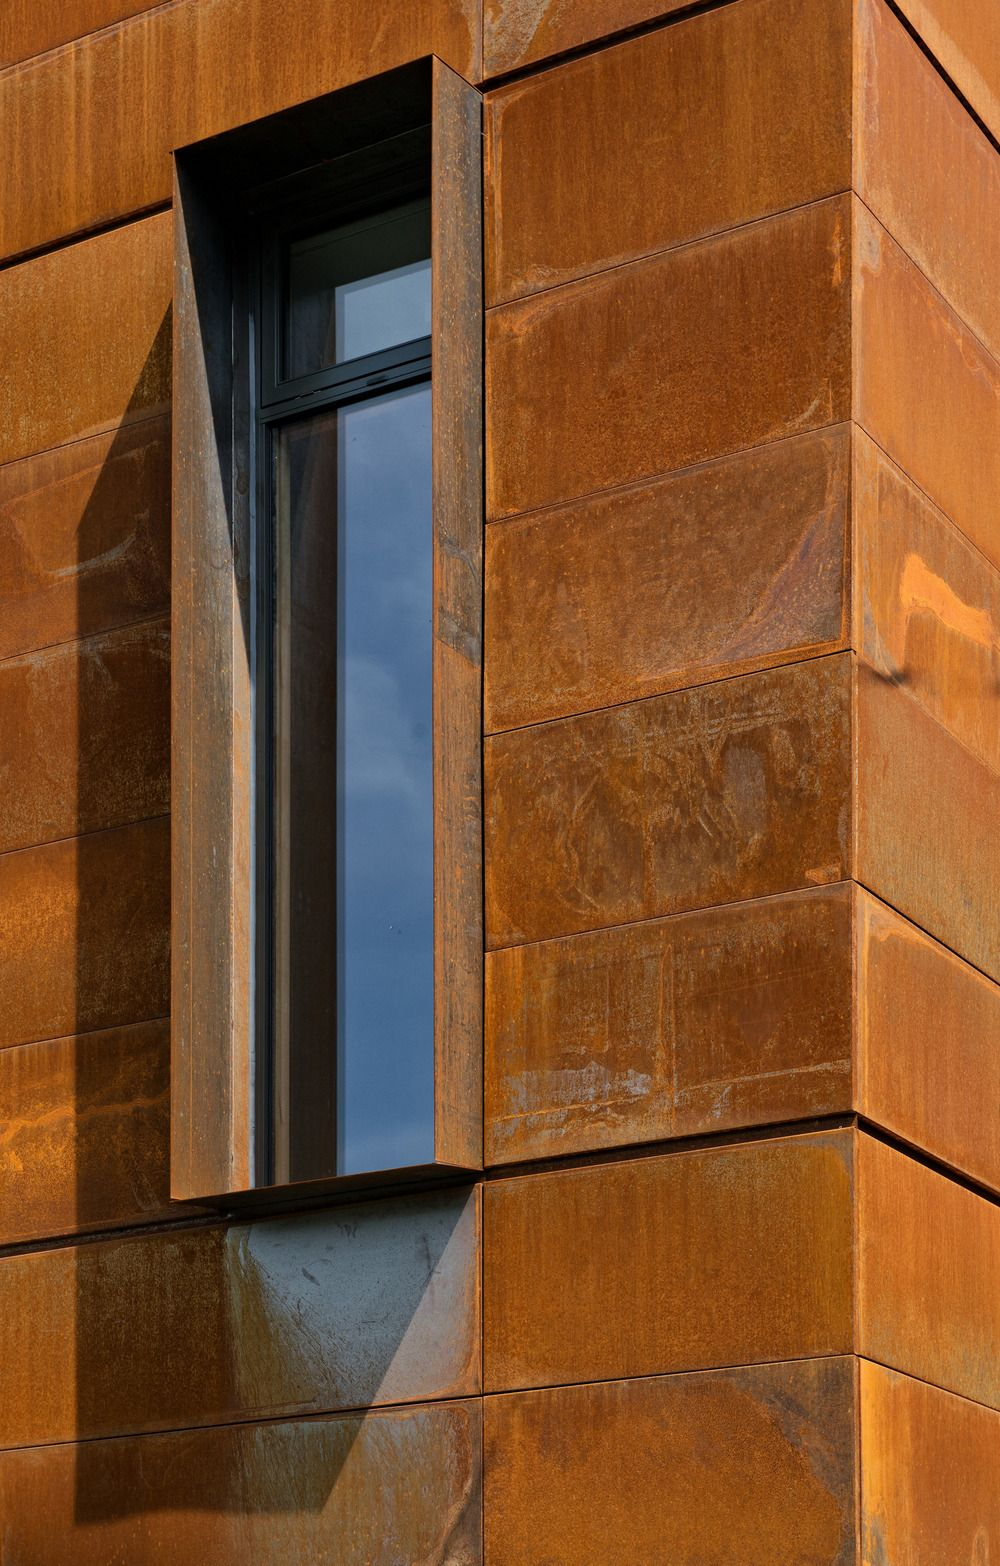 1570520646 801 the wonderful influence of corten steel in architecture - The Wonderful Influence Of Corten Steel In Architecture